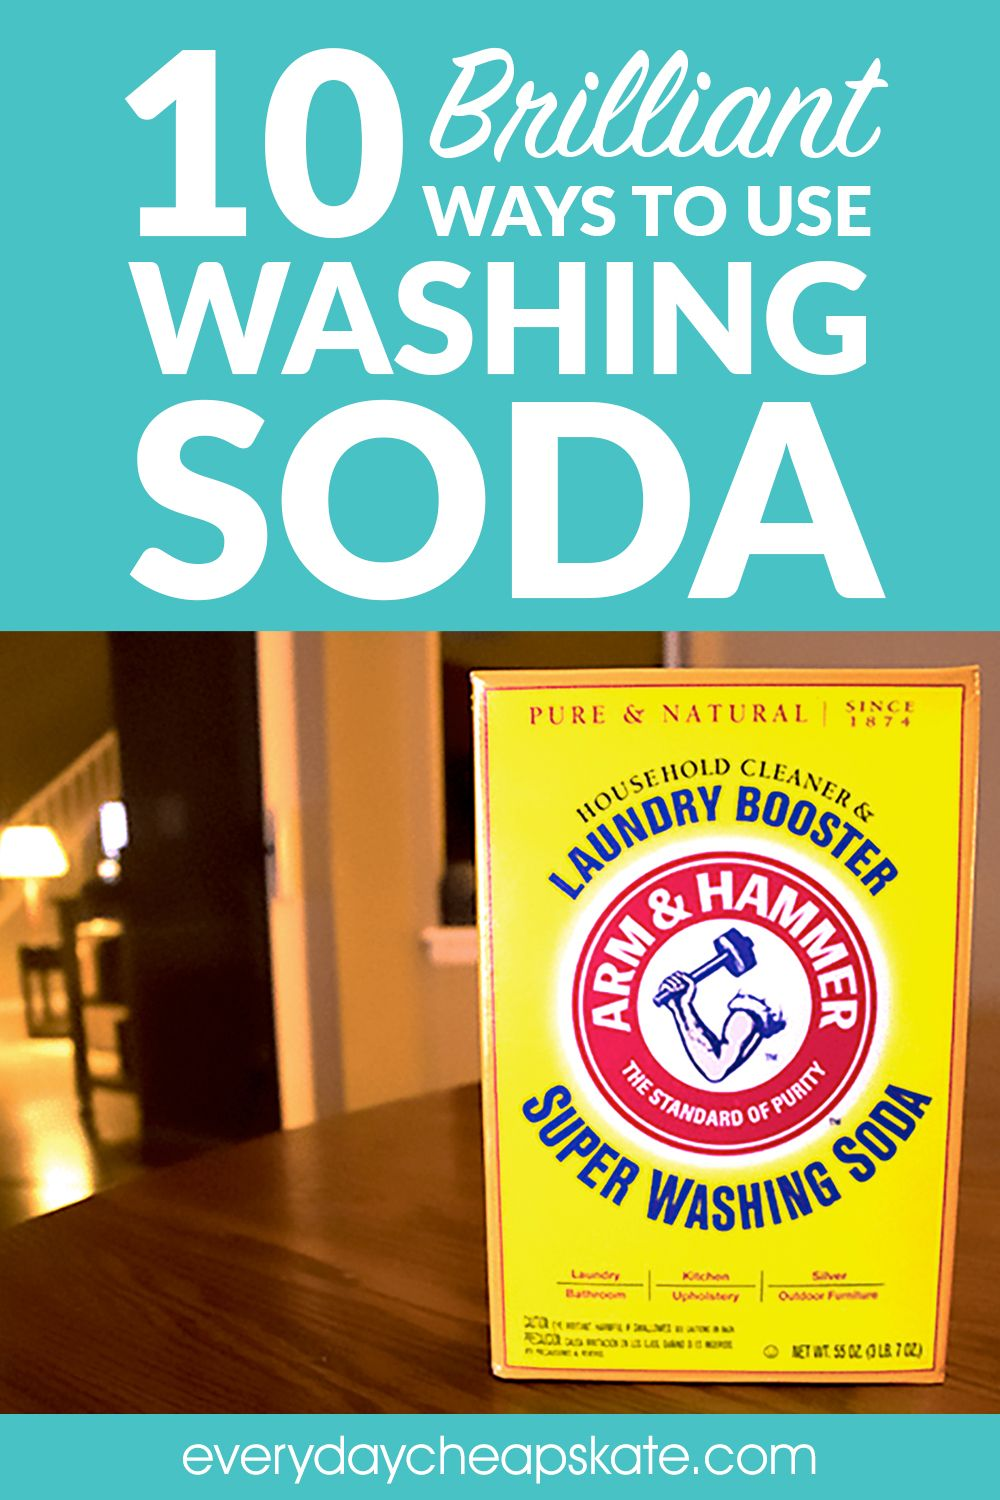 10 Brilliant Ways To Use Washing Soda That Will Make Your Life